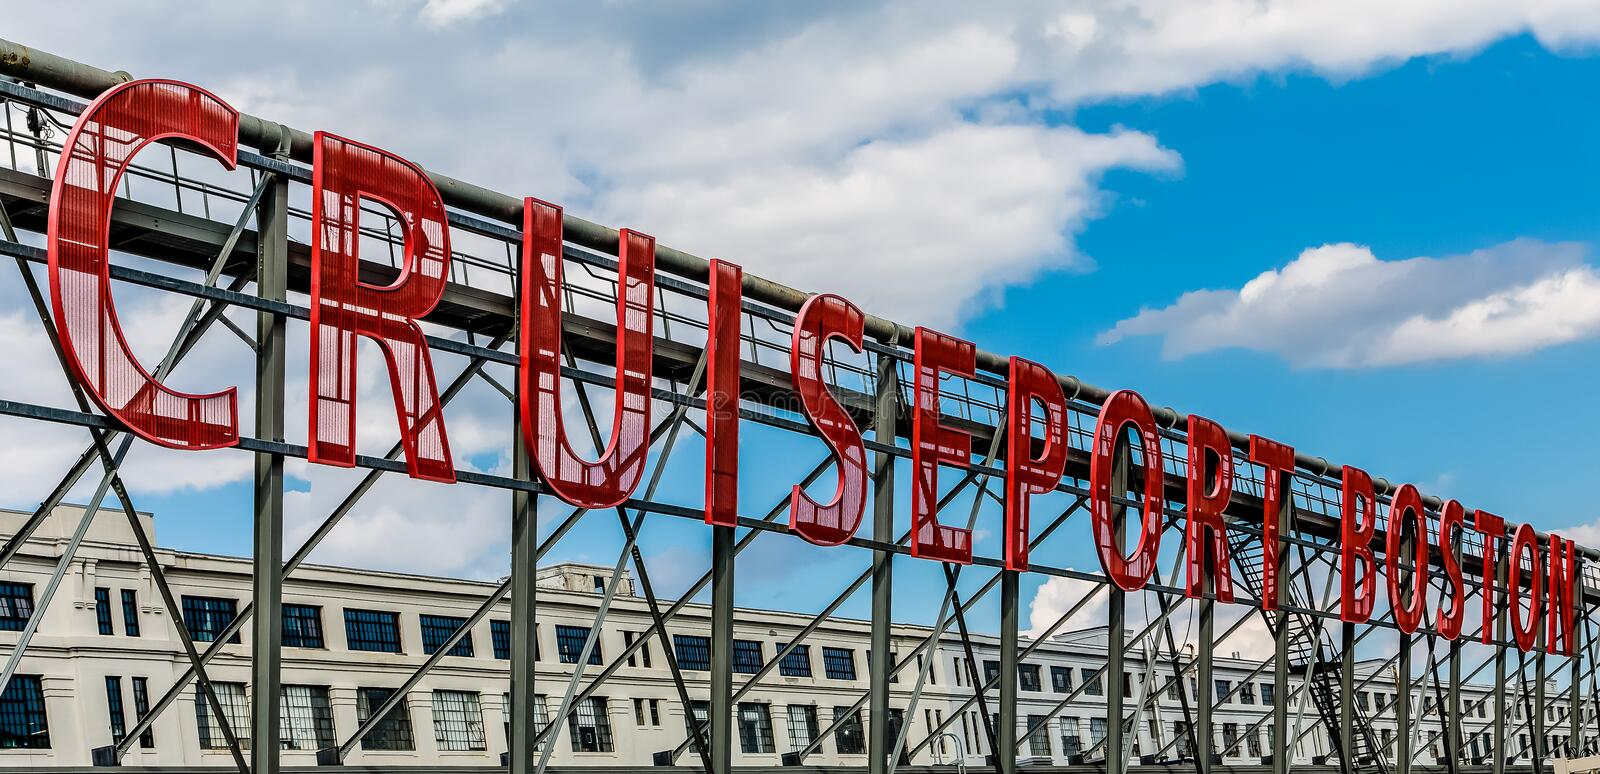 Cruise Port Boston Sign Stock Photo Image Of Transportation - Roller coaster on a cruise ship